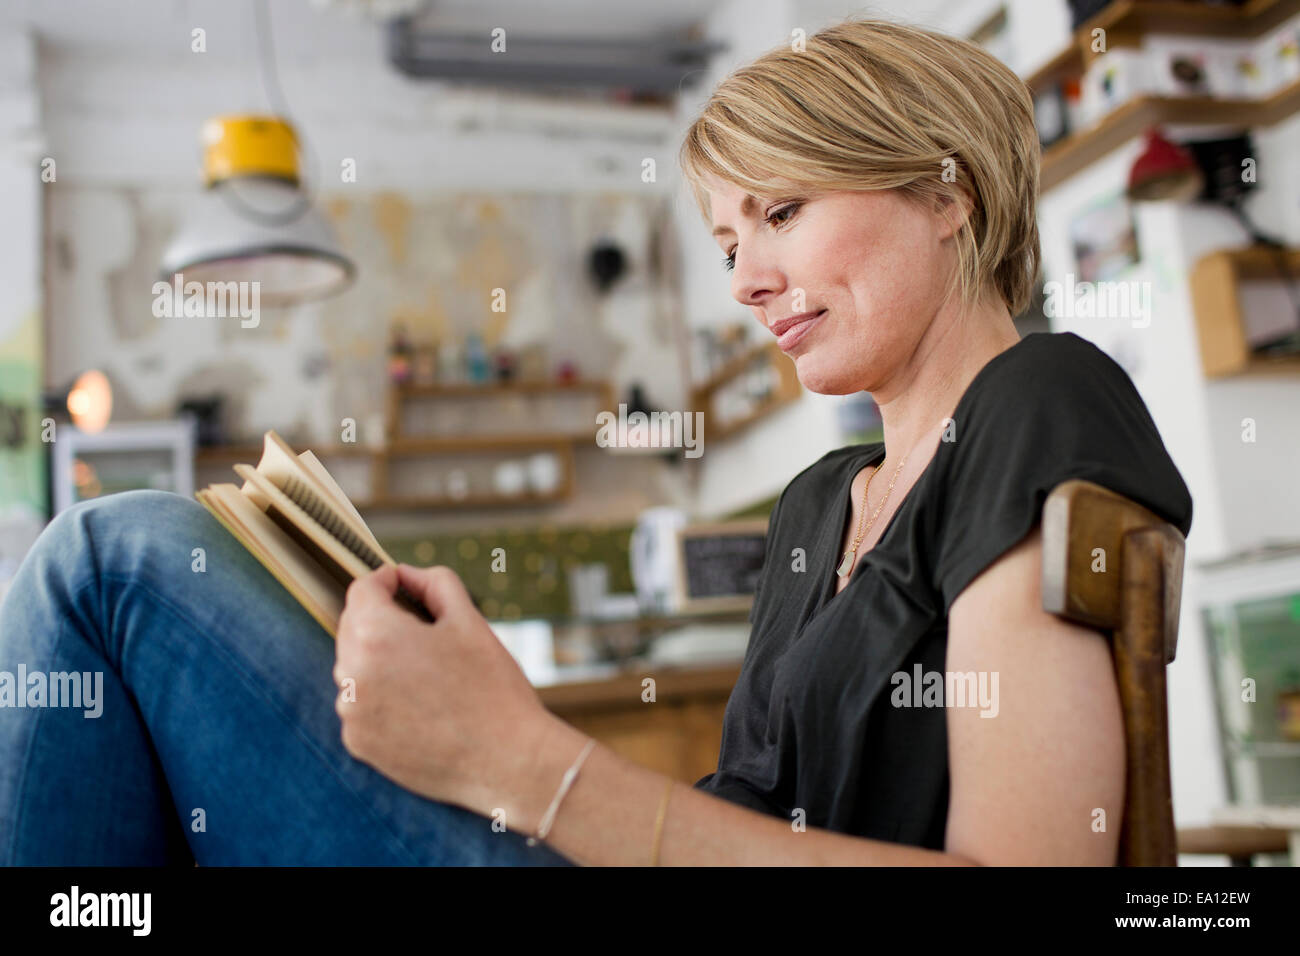 Mid adult woman reading book in cafe Stock Photo